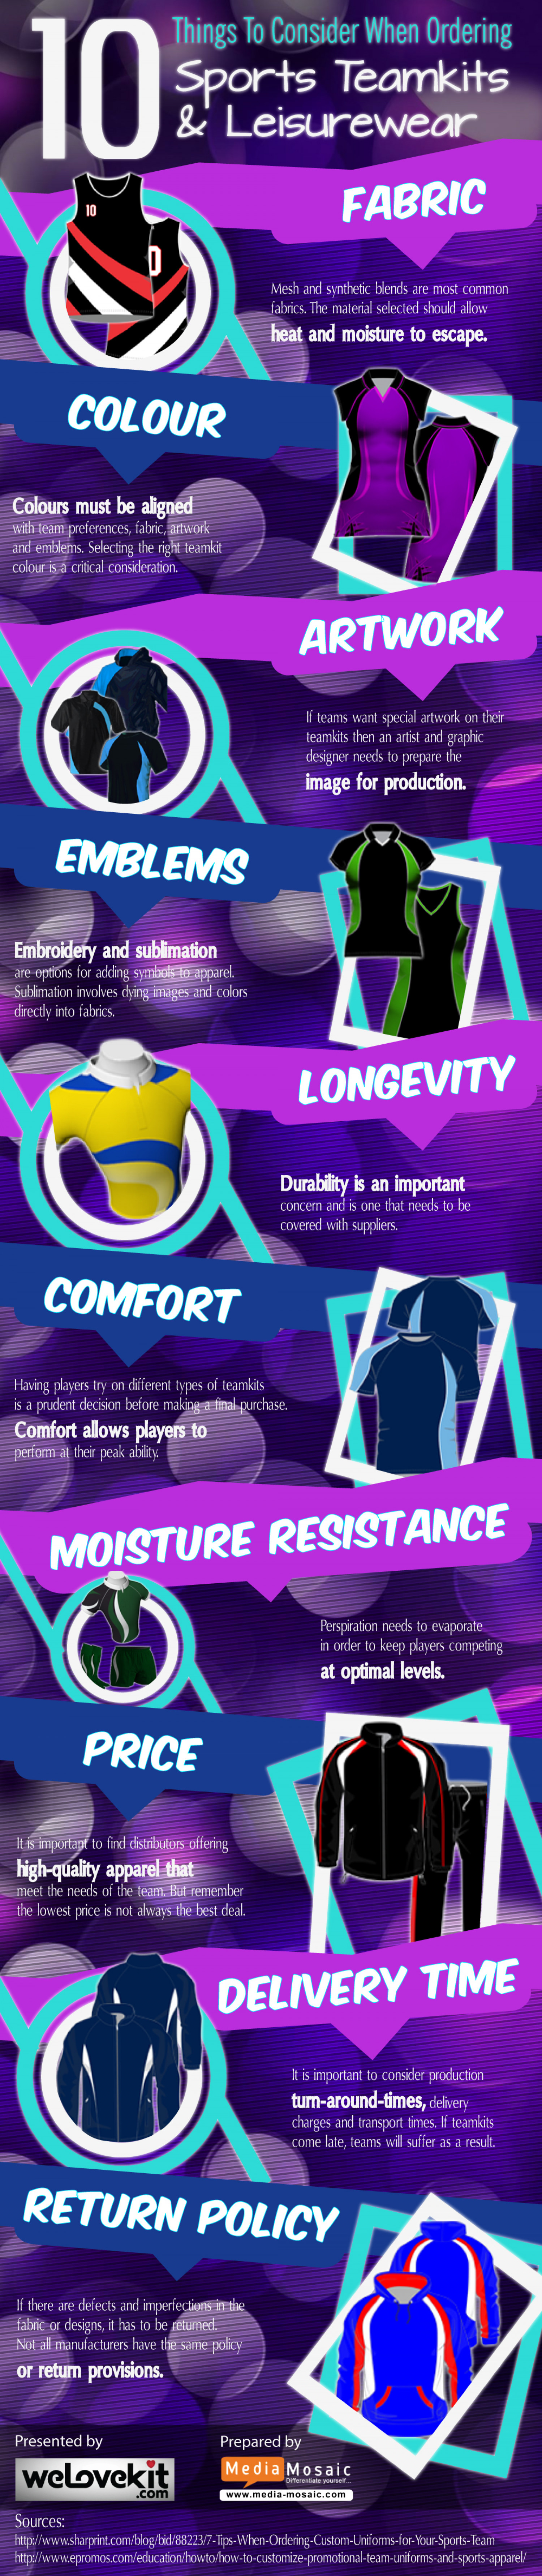 10 Things to Consider When Ordering Sports Teamkits and Leisurewear Infographic